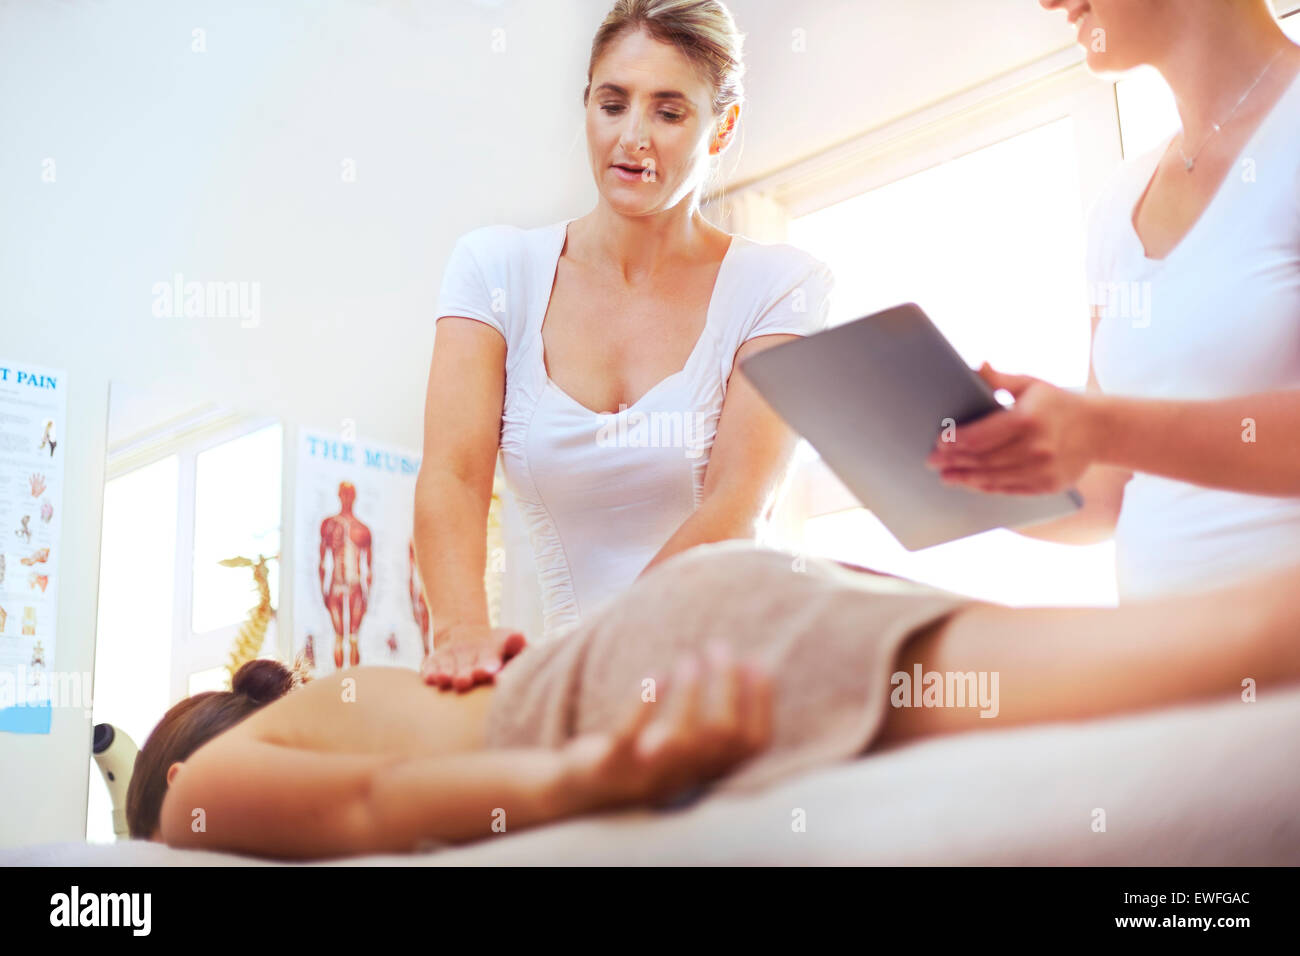 Physical therapists with digital tablet massaging woman's back Stock Photo